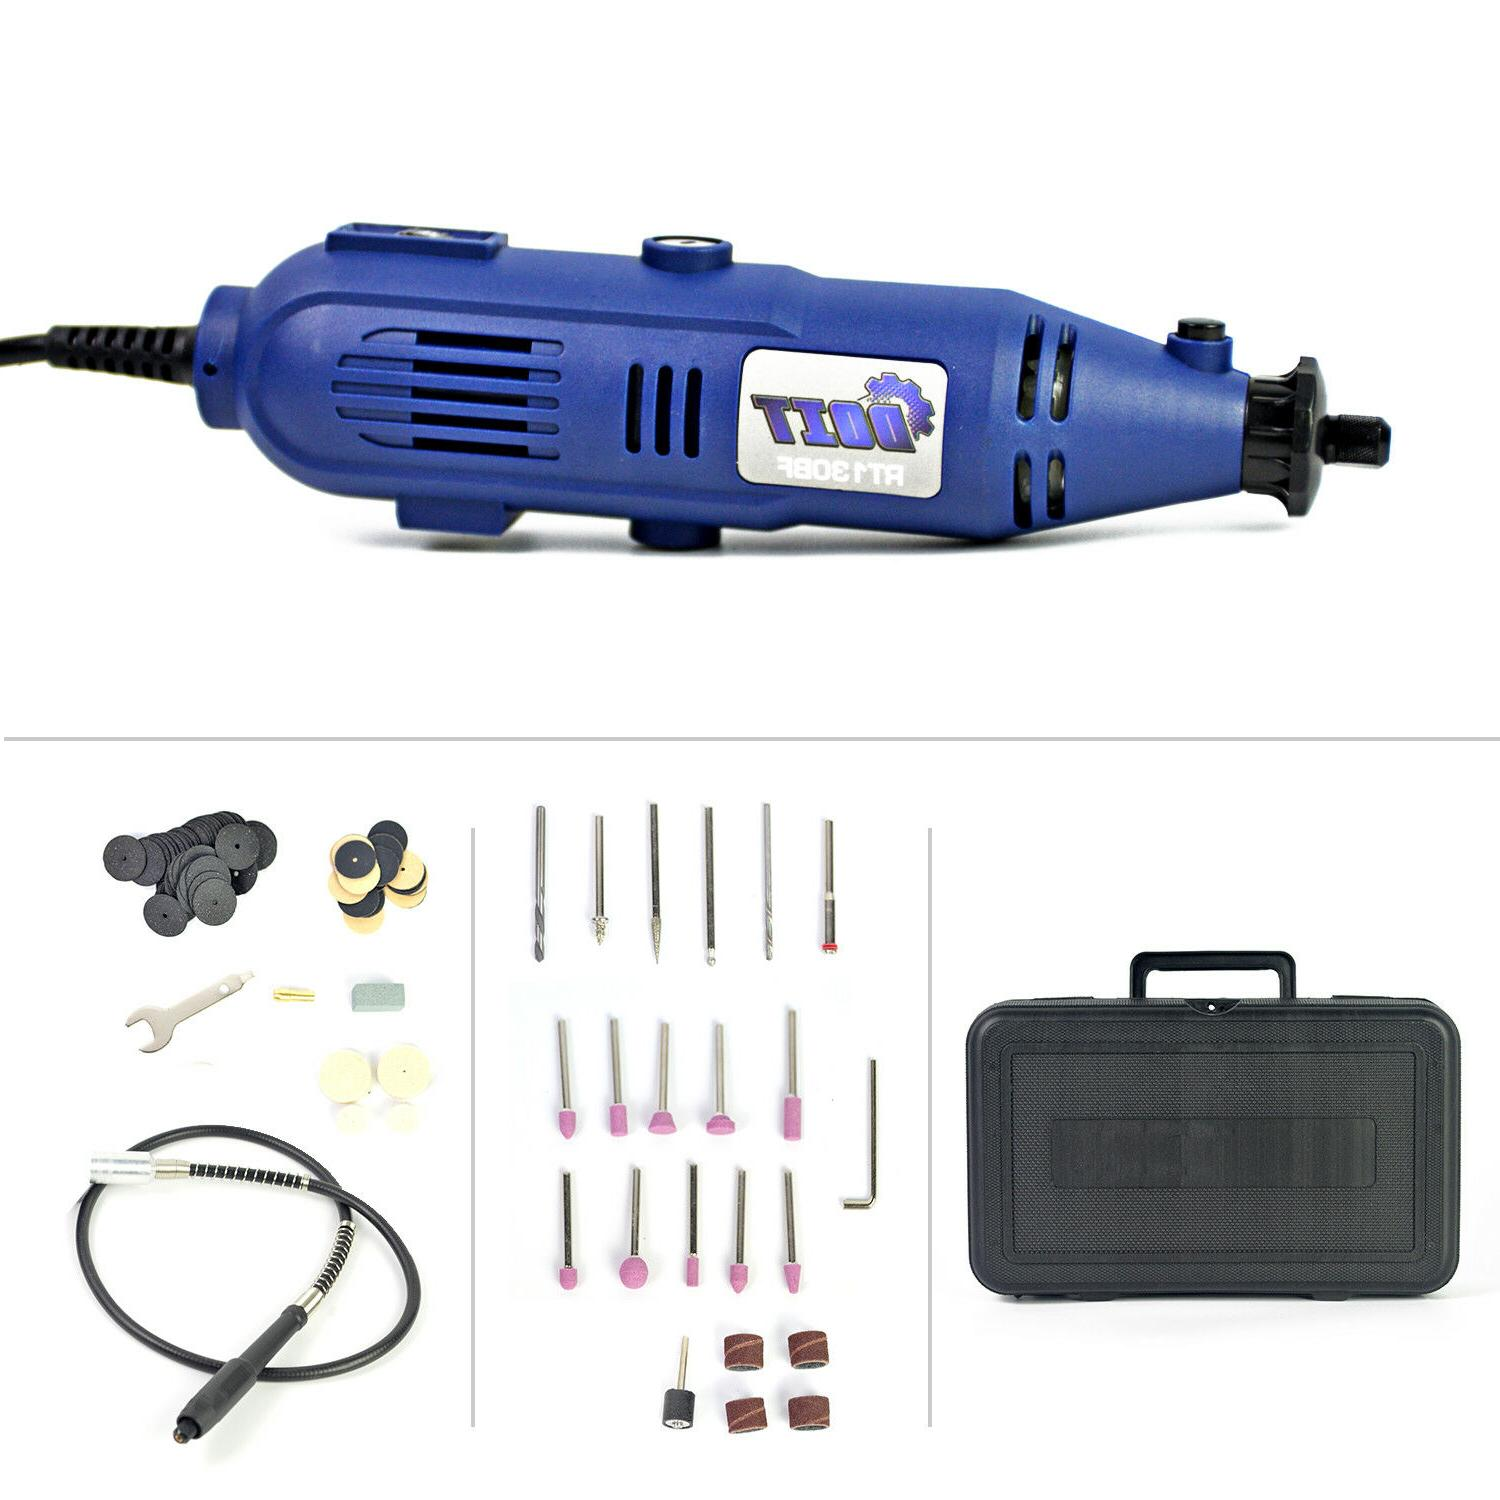 Variable Speed Rotary Tool Kit Grinder w/ Case 110 Pieces Ac